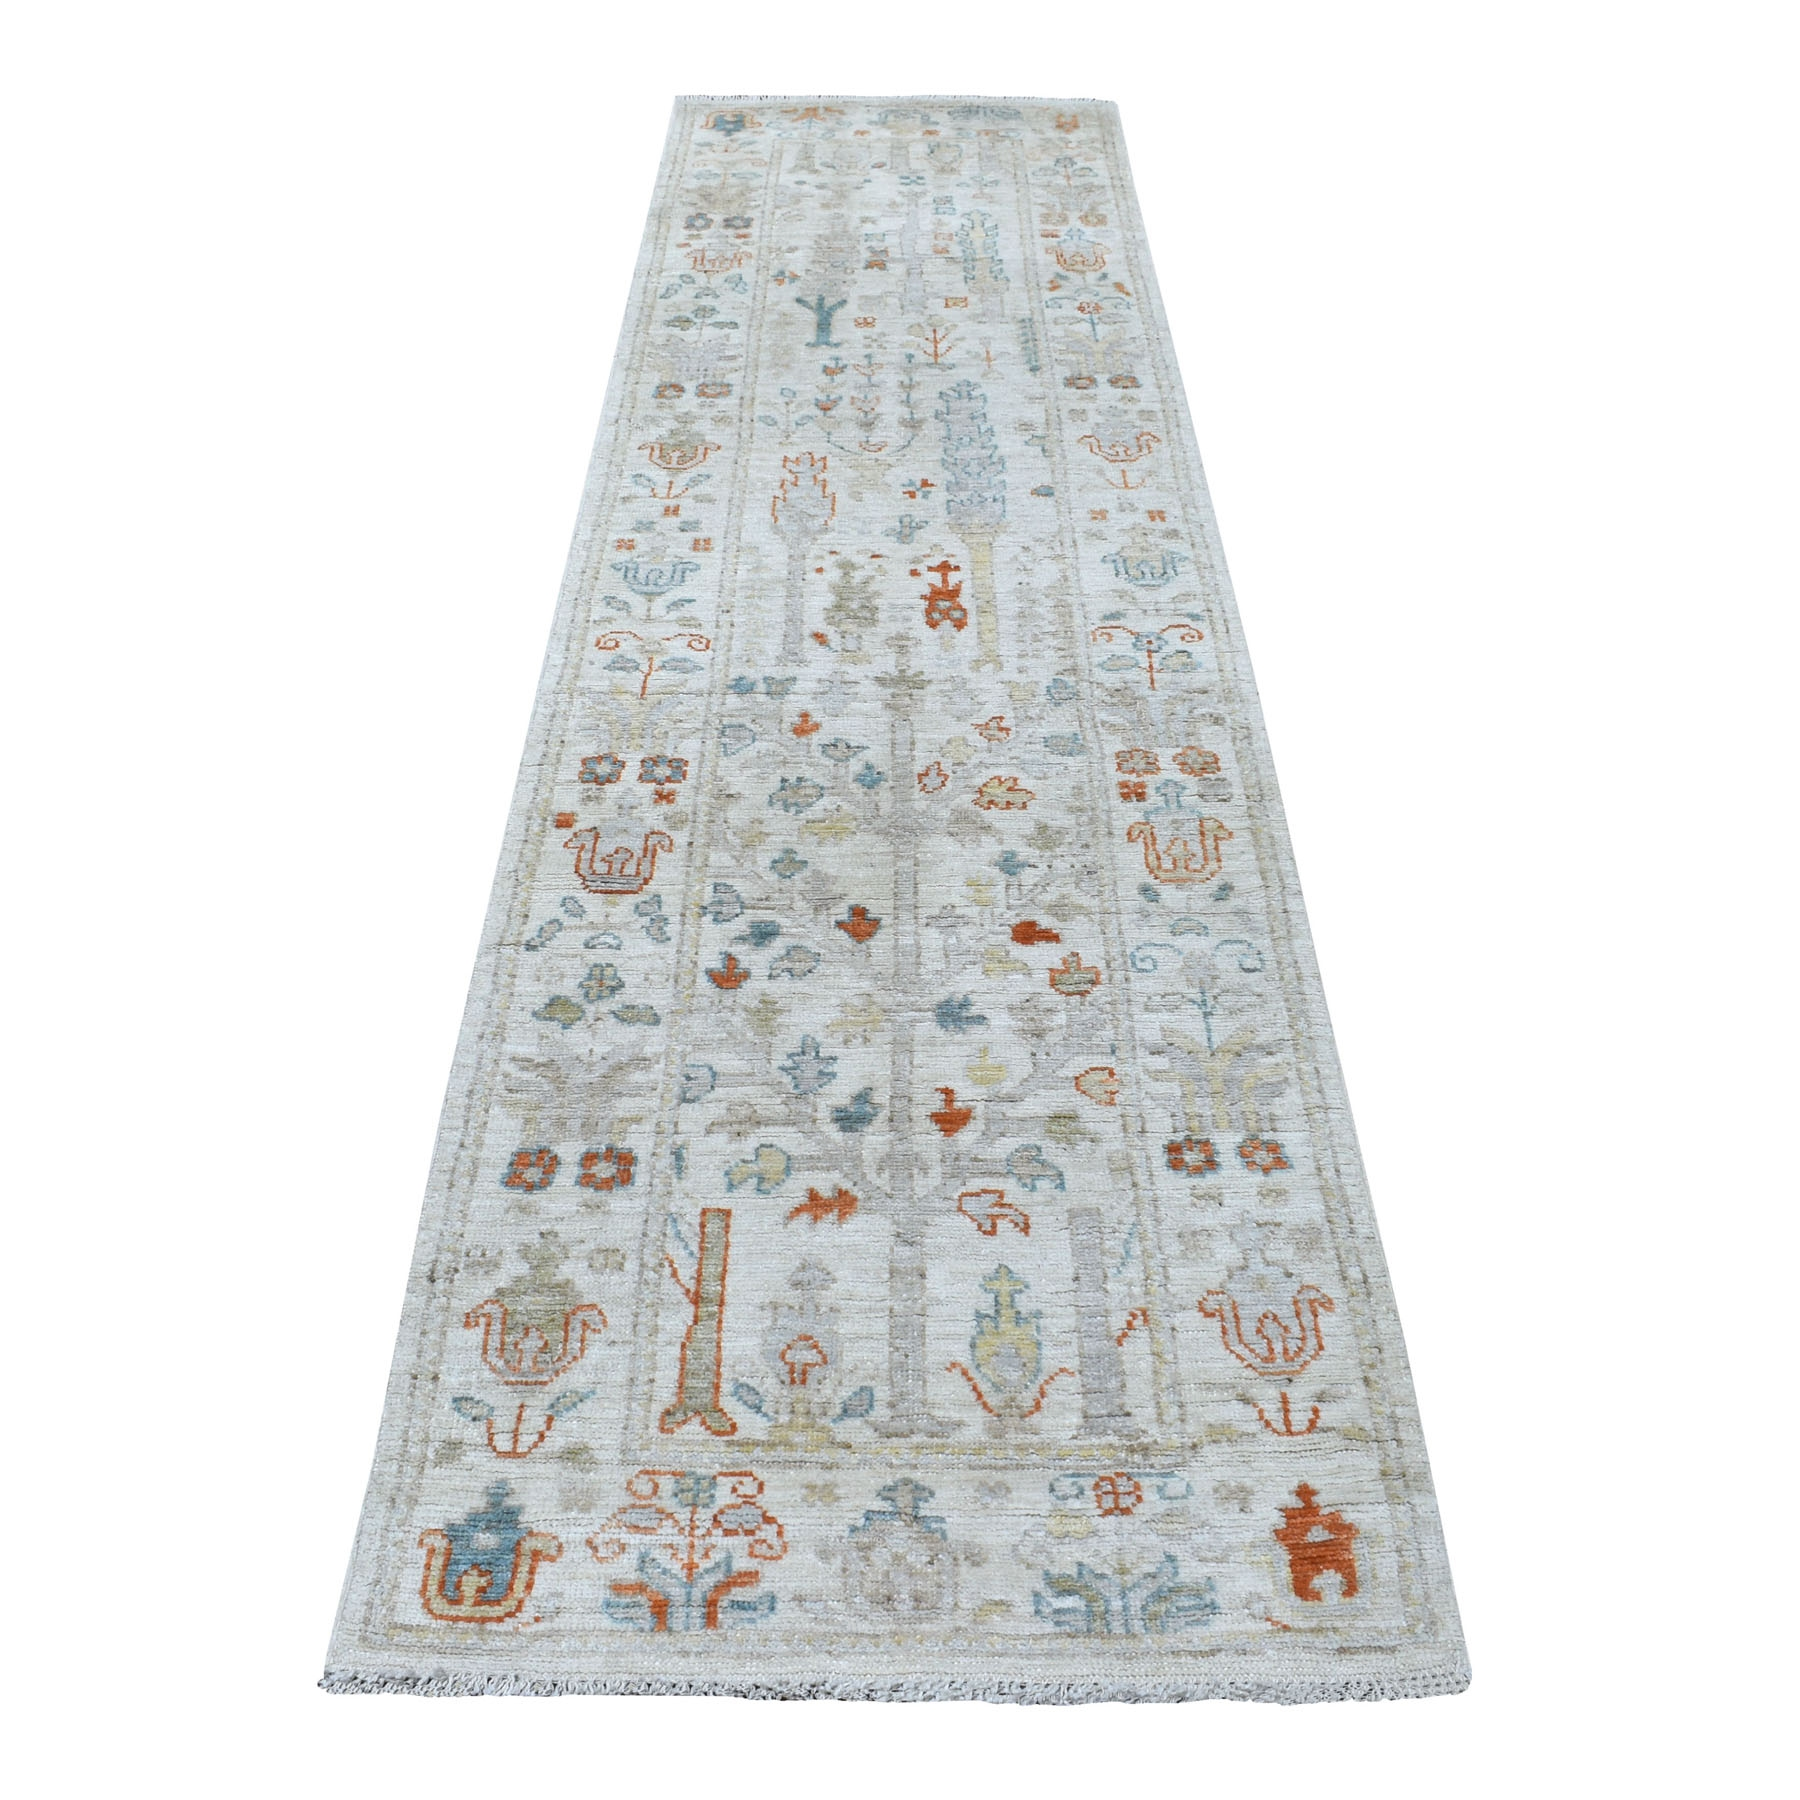 "2'9""x9'10"" Ivory Angora Oushak With Cypress Tree Design Hand Knotted Glimmery Wool Oriental Runner Rug"